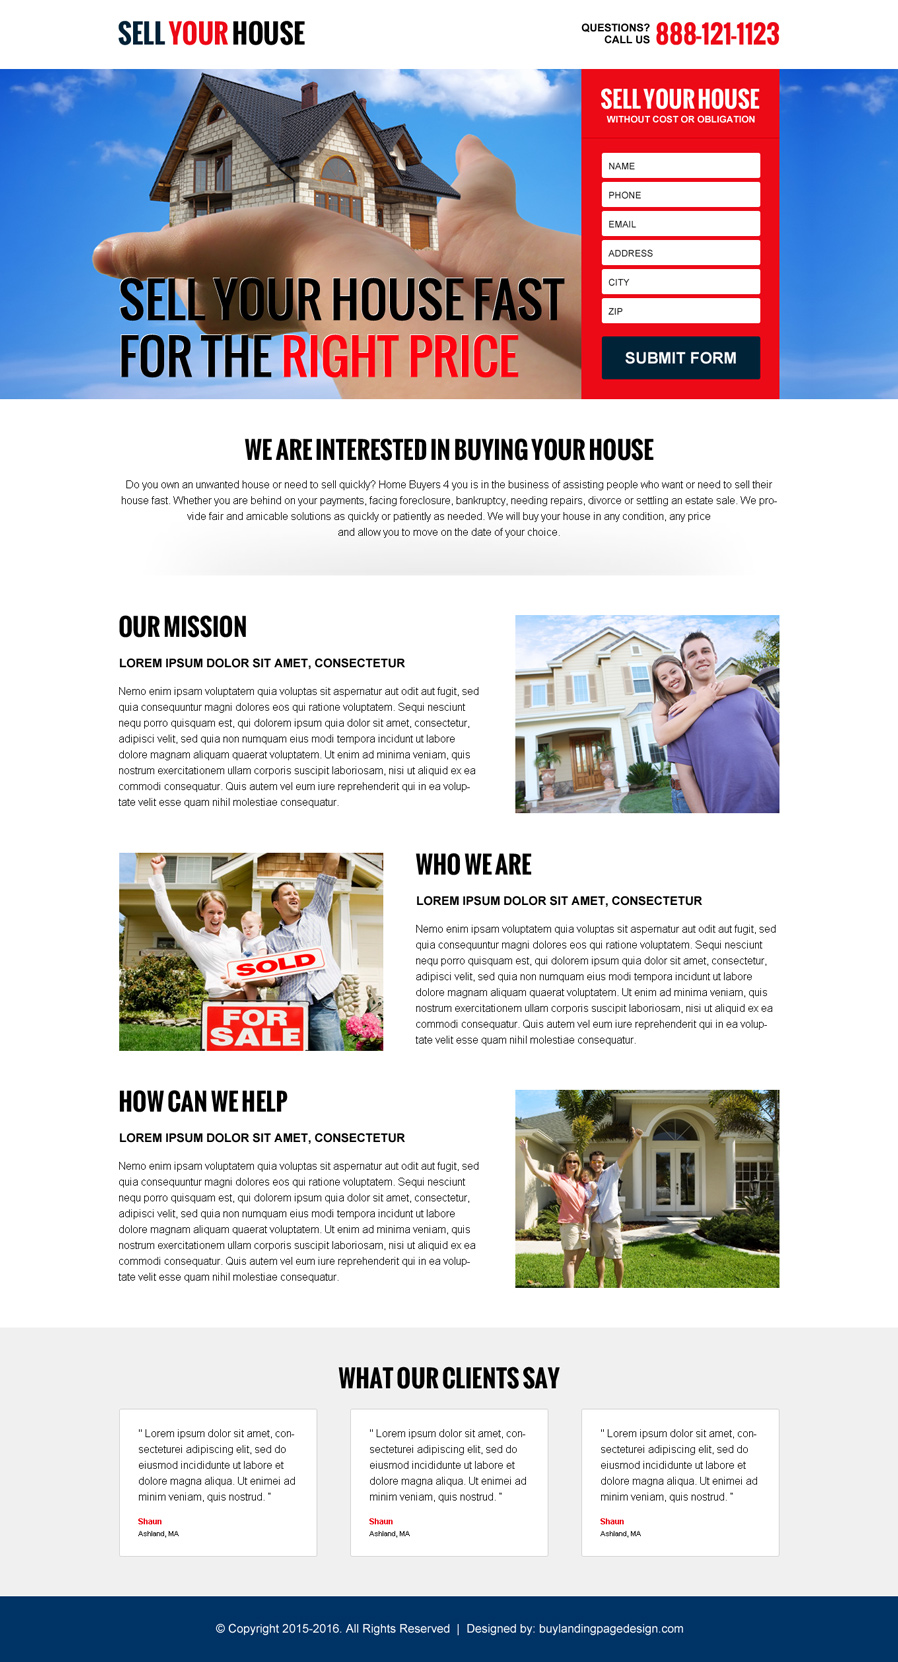 sell-your-house-fast-lead-capture-landing-page-design-template-012